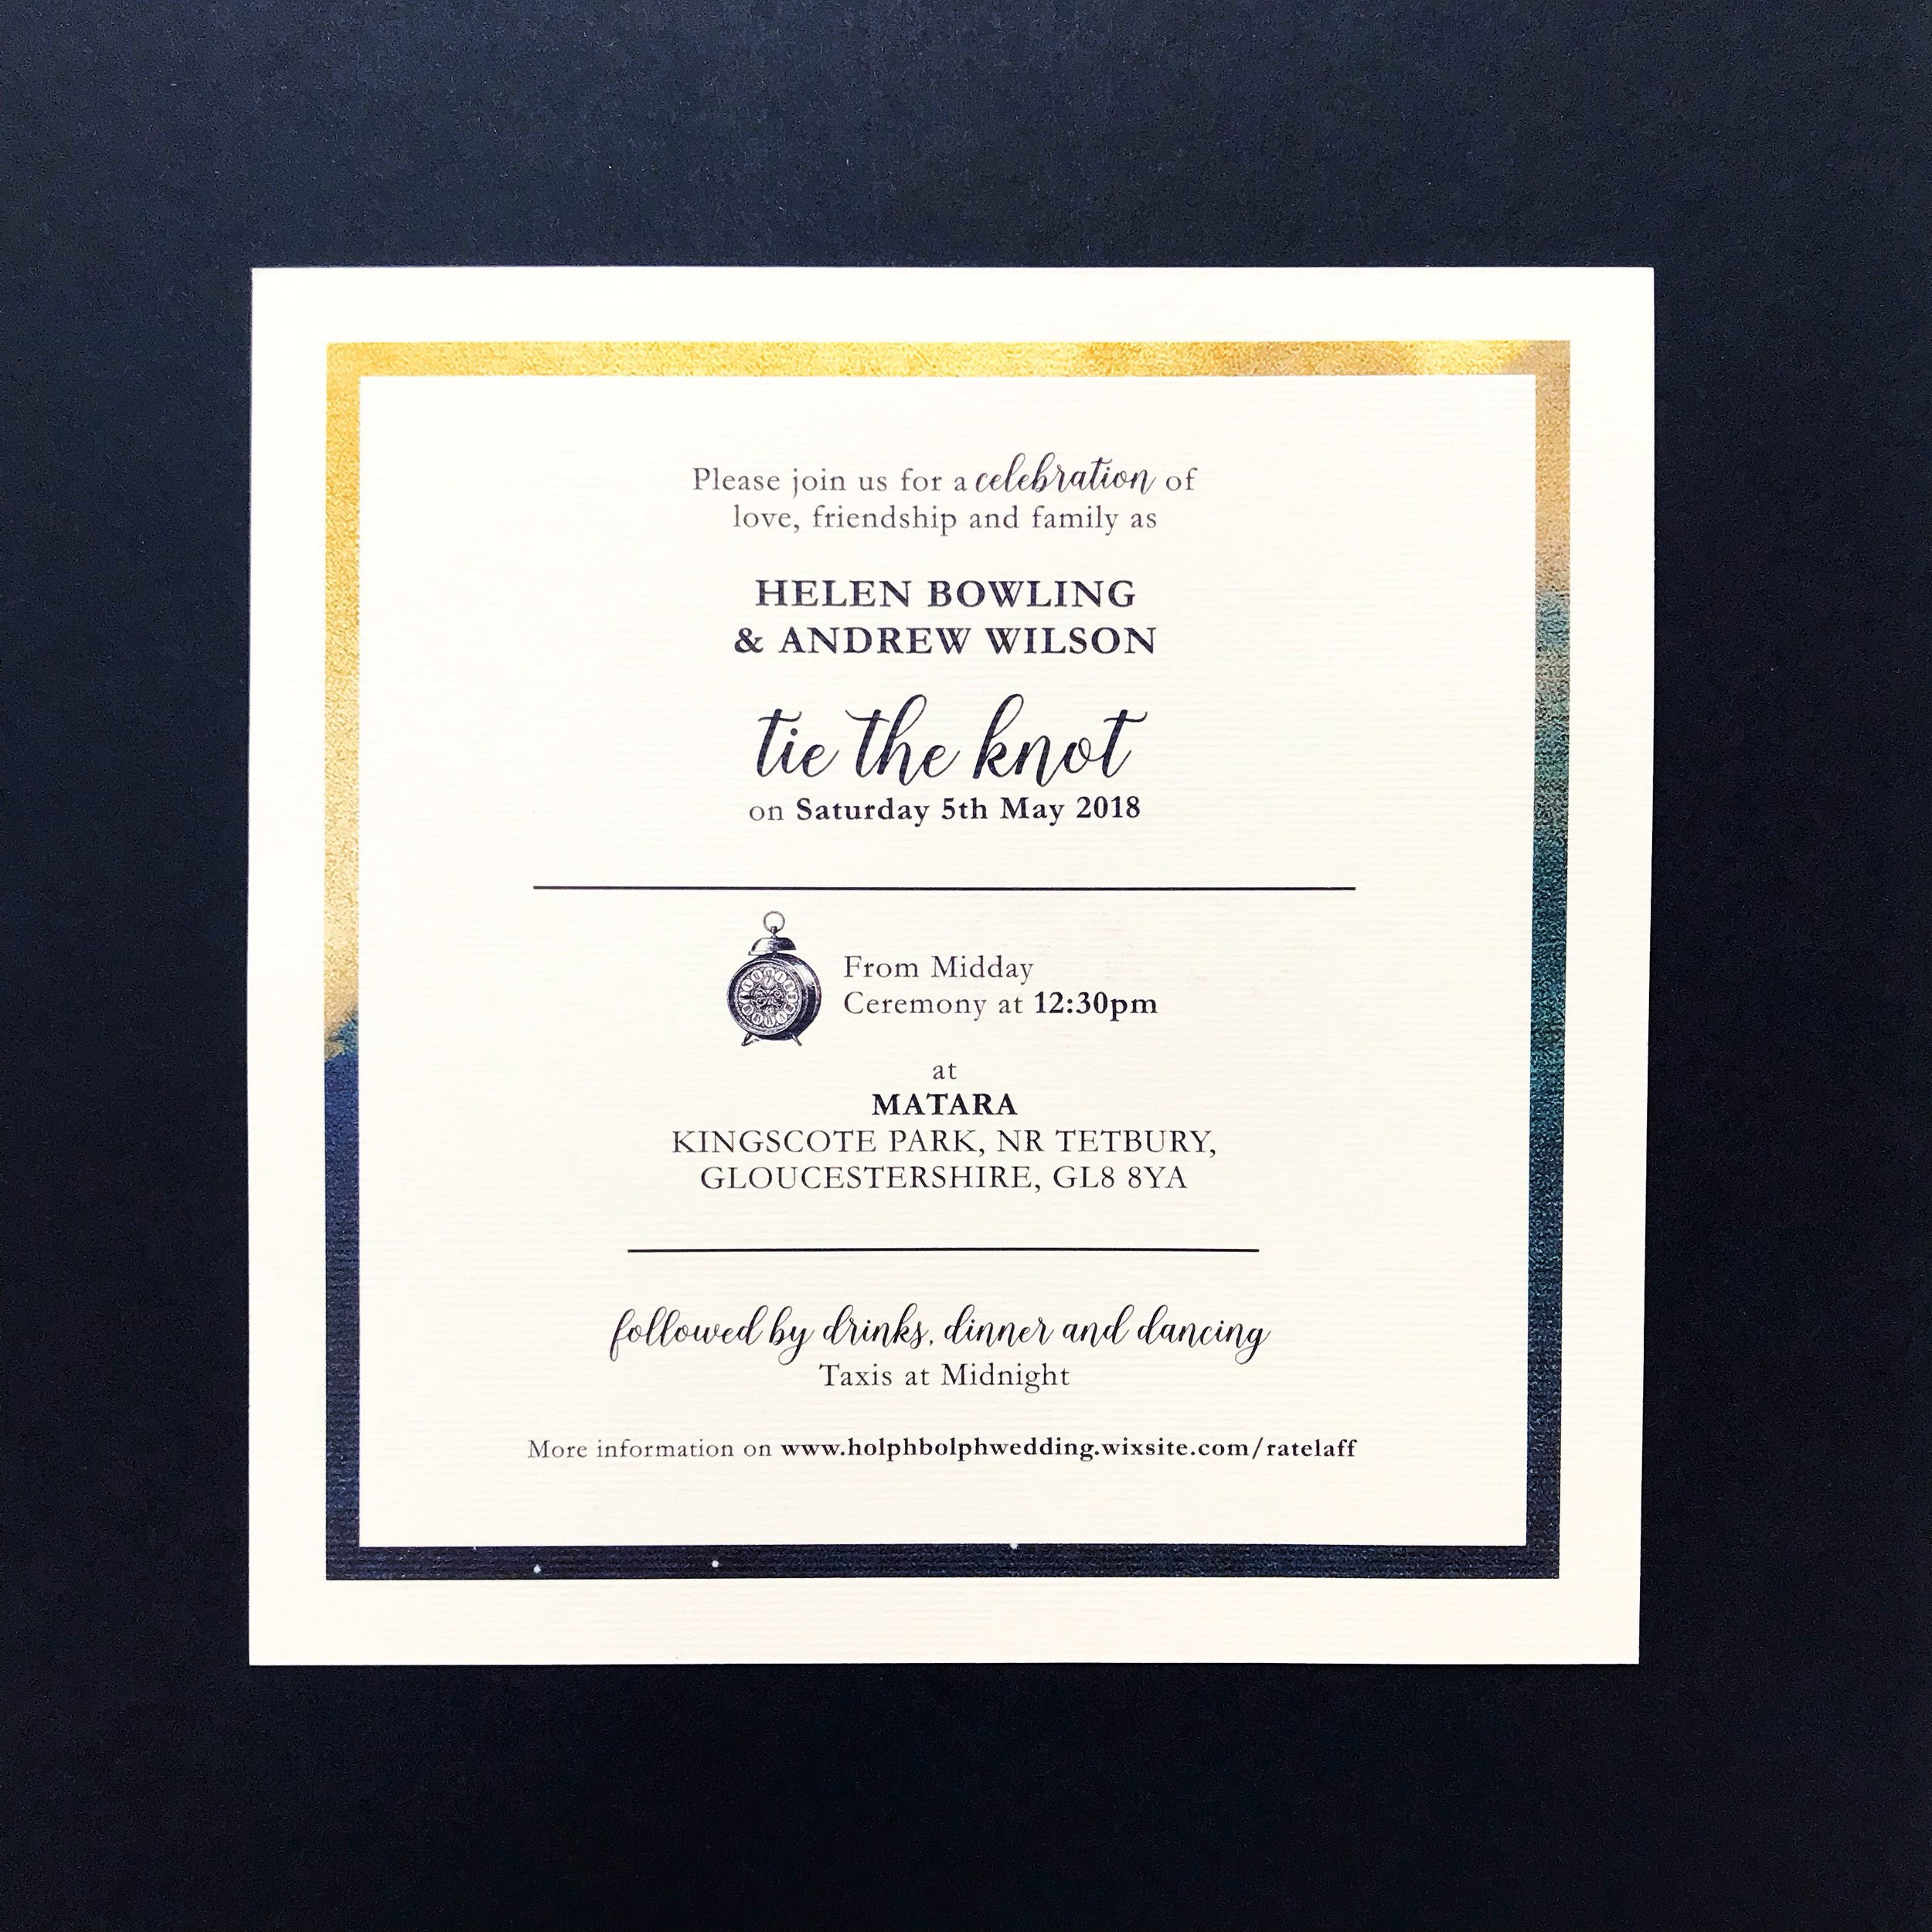 theinkcloset-wedding-invite-midnight-stars-matara-inspo-blog-9.jpg